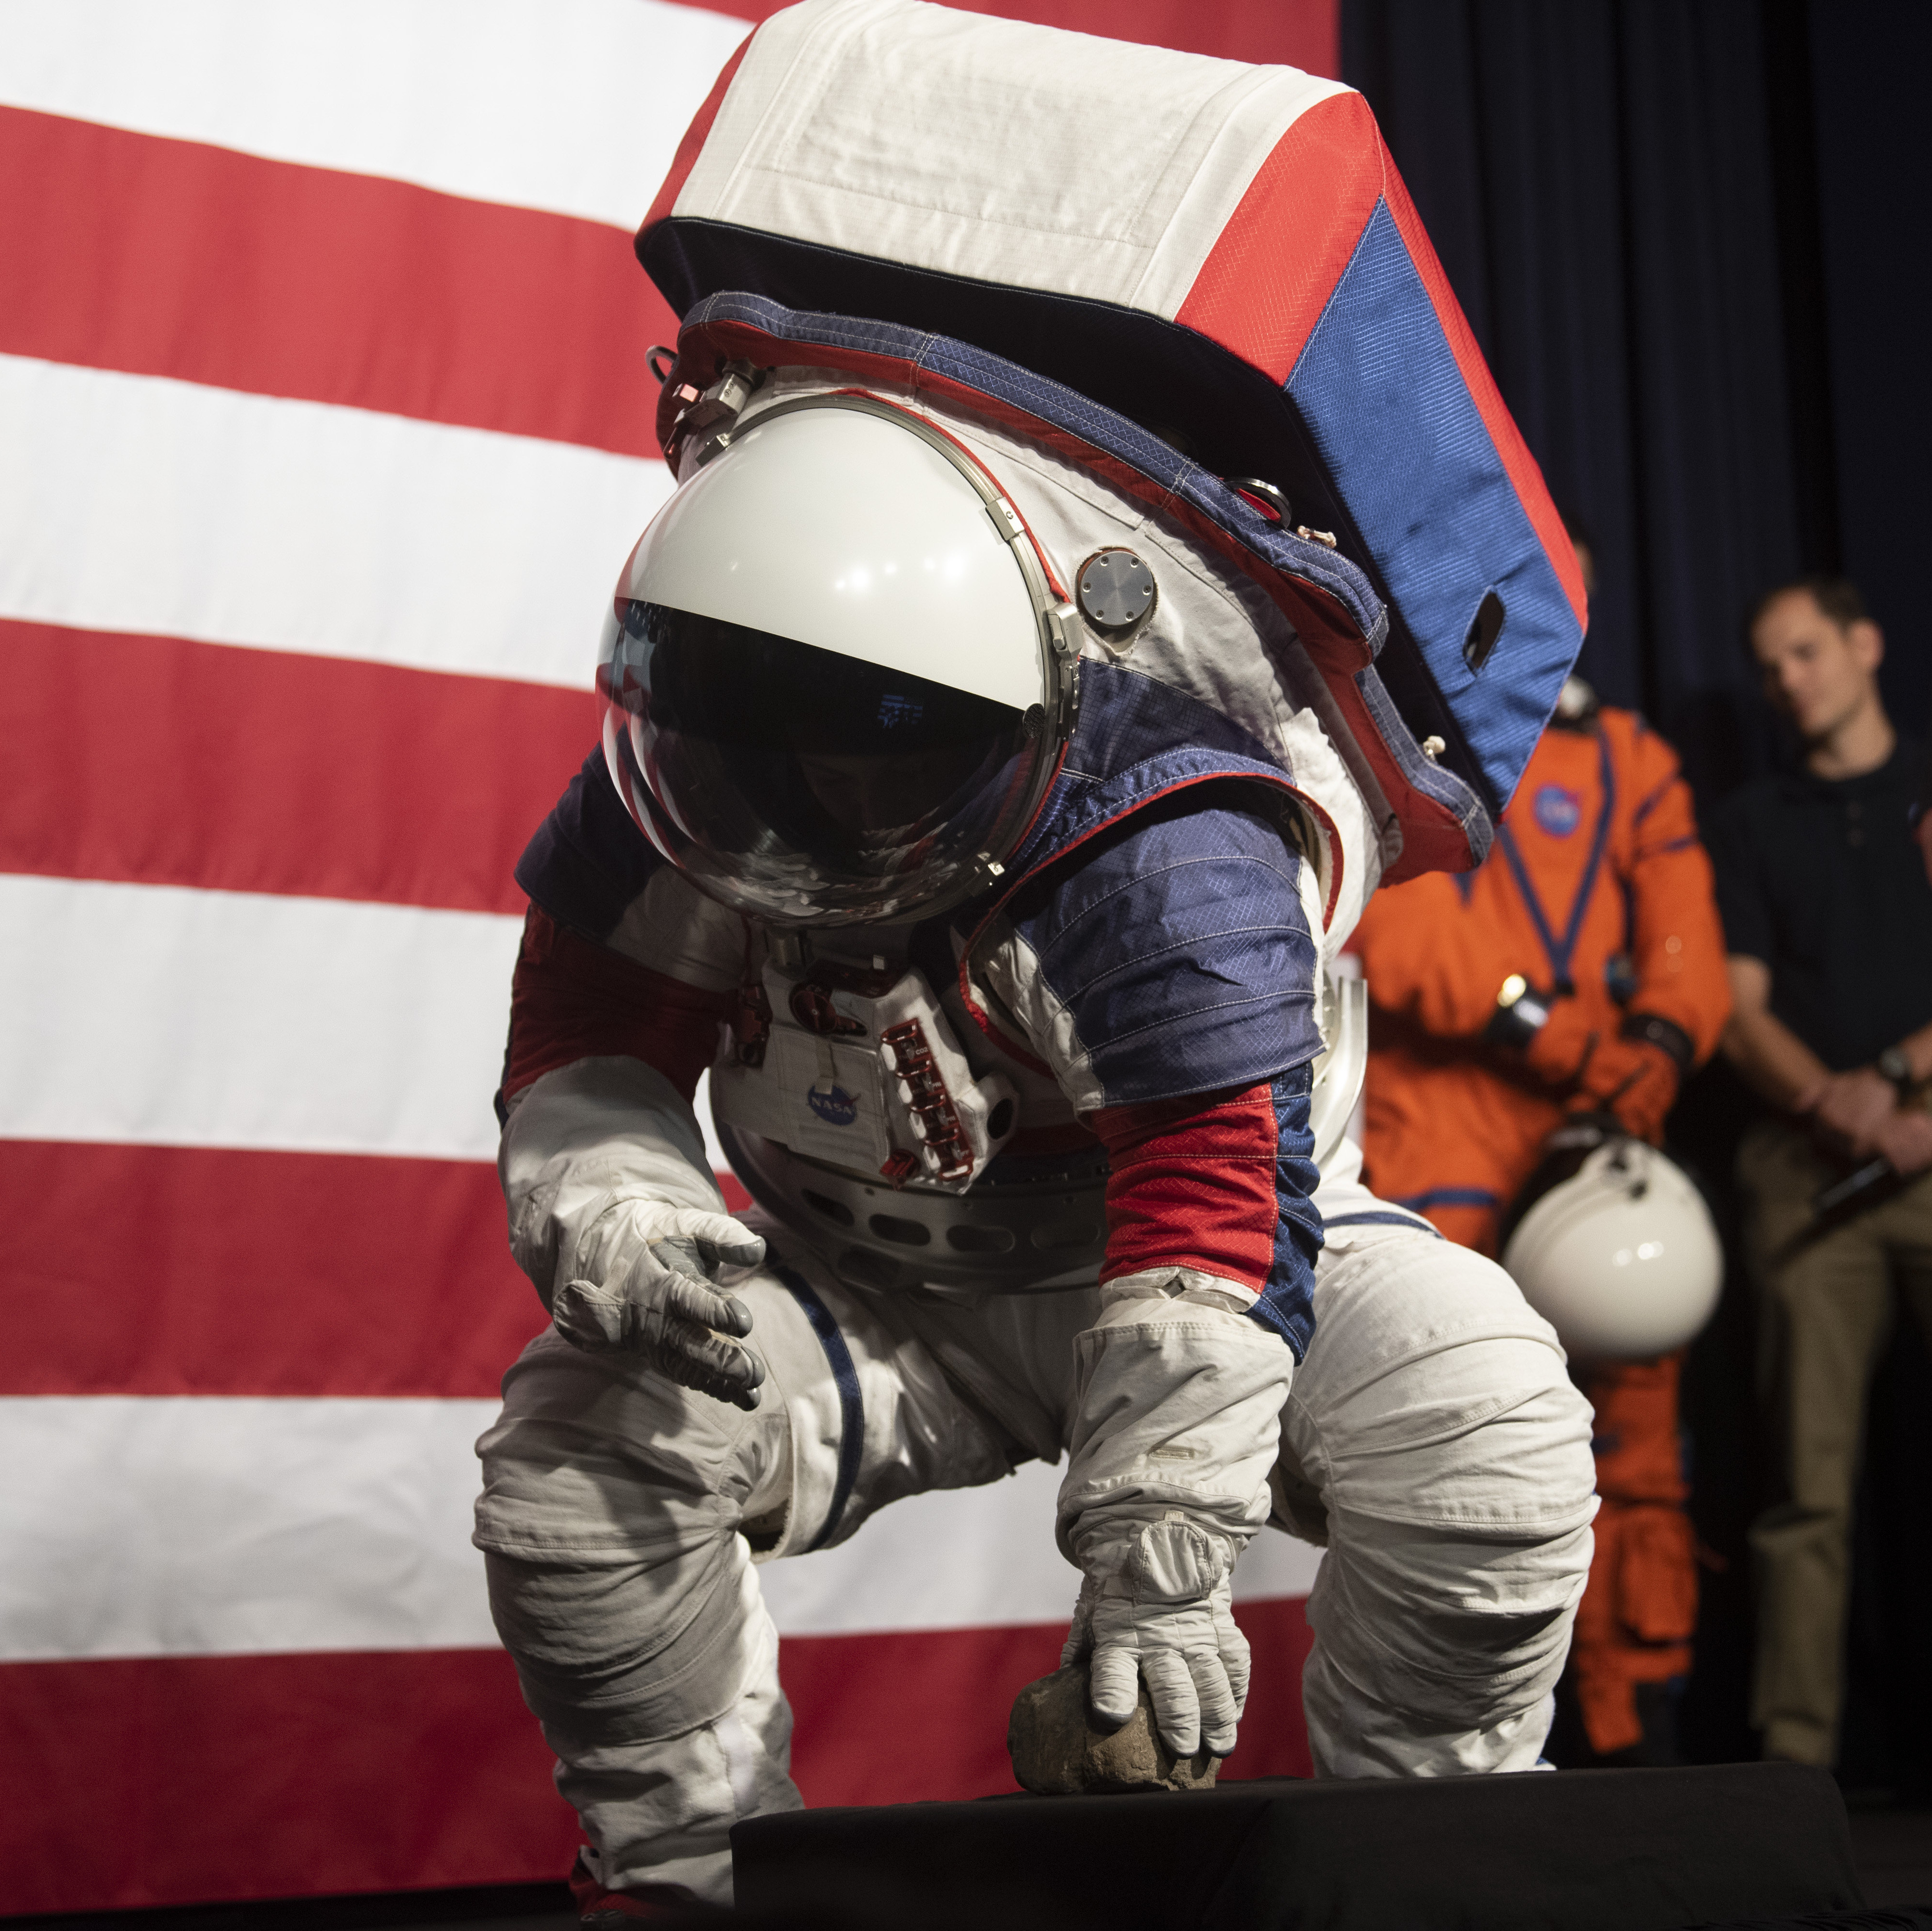 For NASA's New Suits, 'Mobility' Is The Watchword